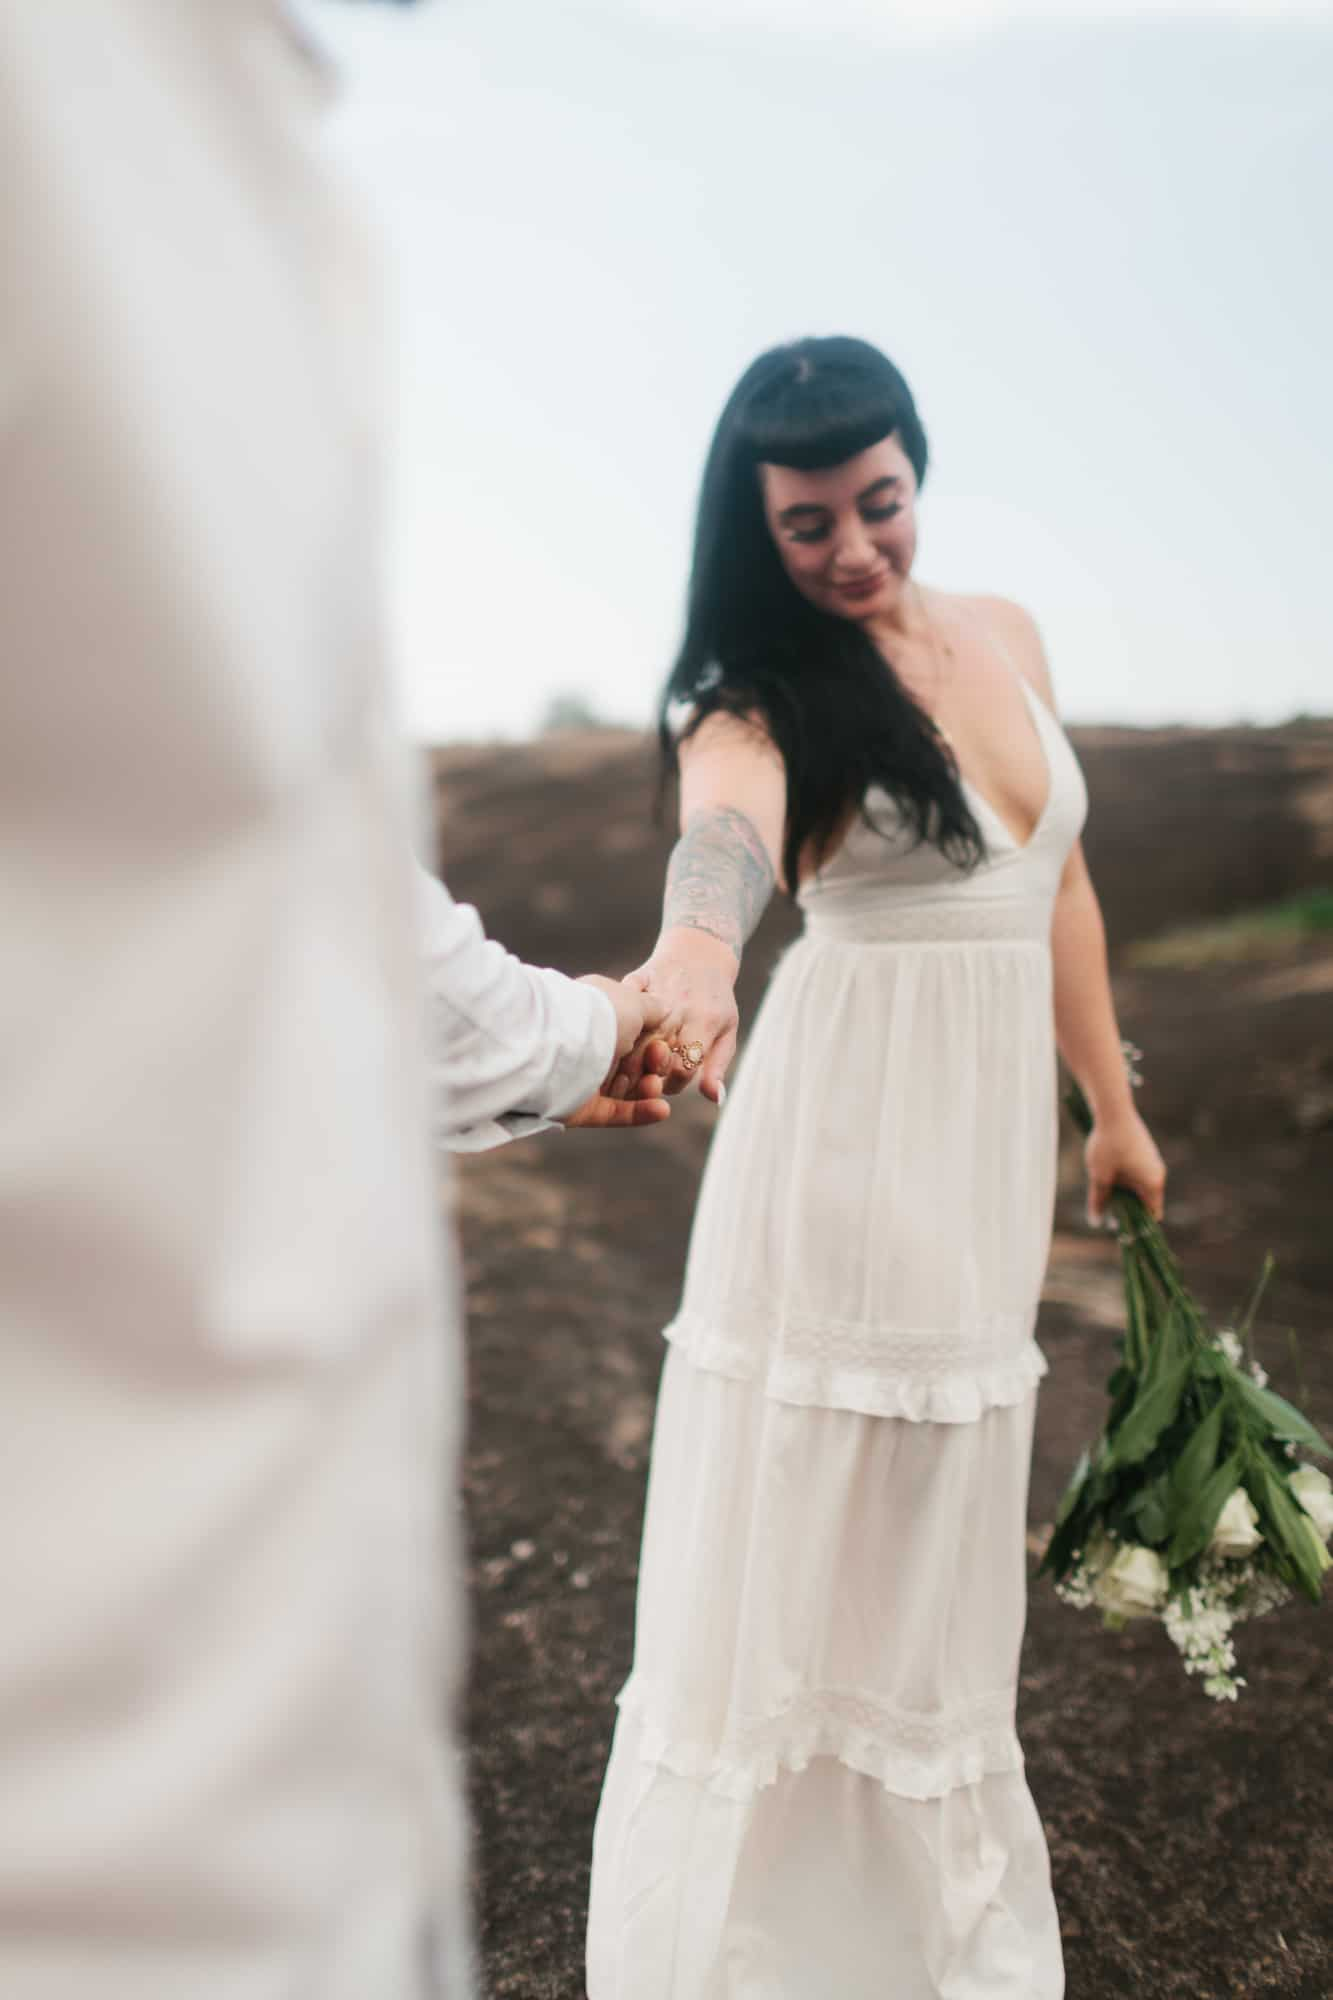 Arabia Mountain engagement session by Kate Lamb of Wild in Love Photo